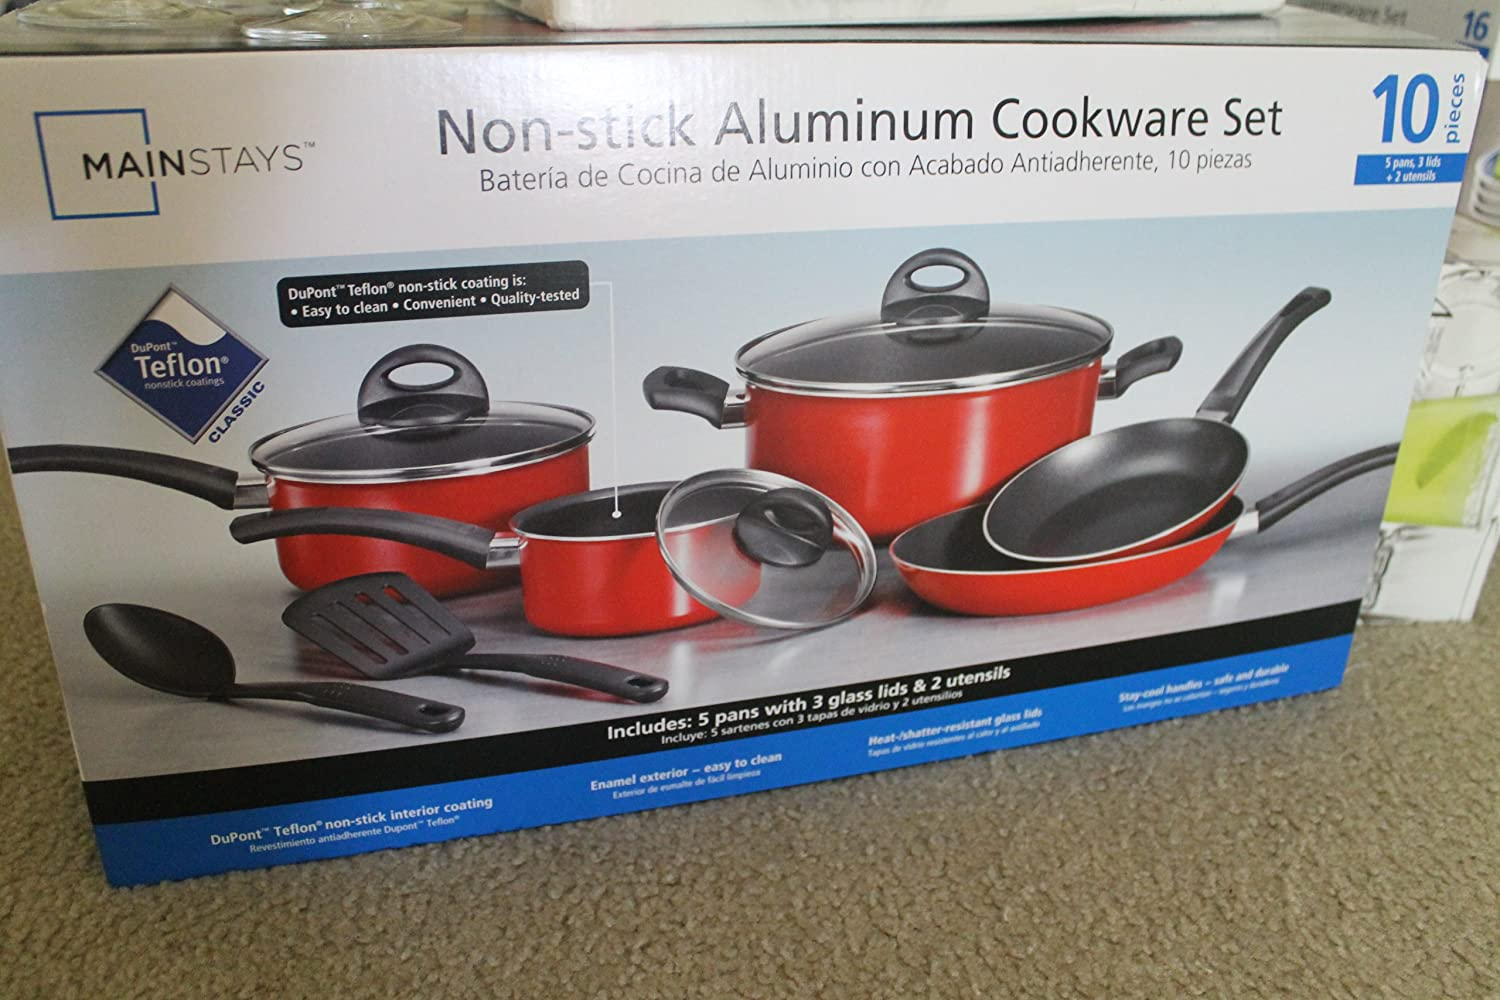 Amazon.com: Mainstays 10-Piece Non-Stick Cookware Set, Red: Cell Phones & Accessories